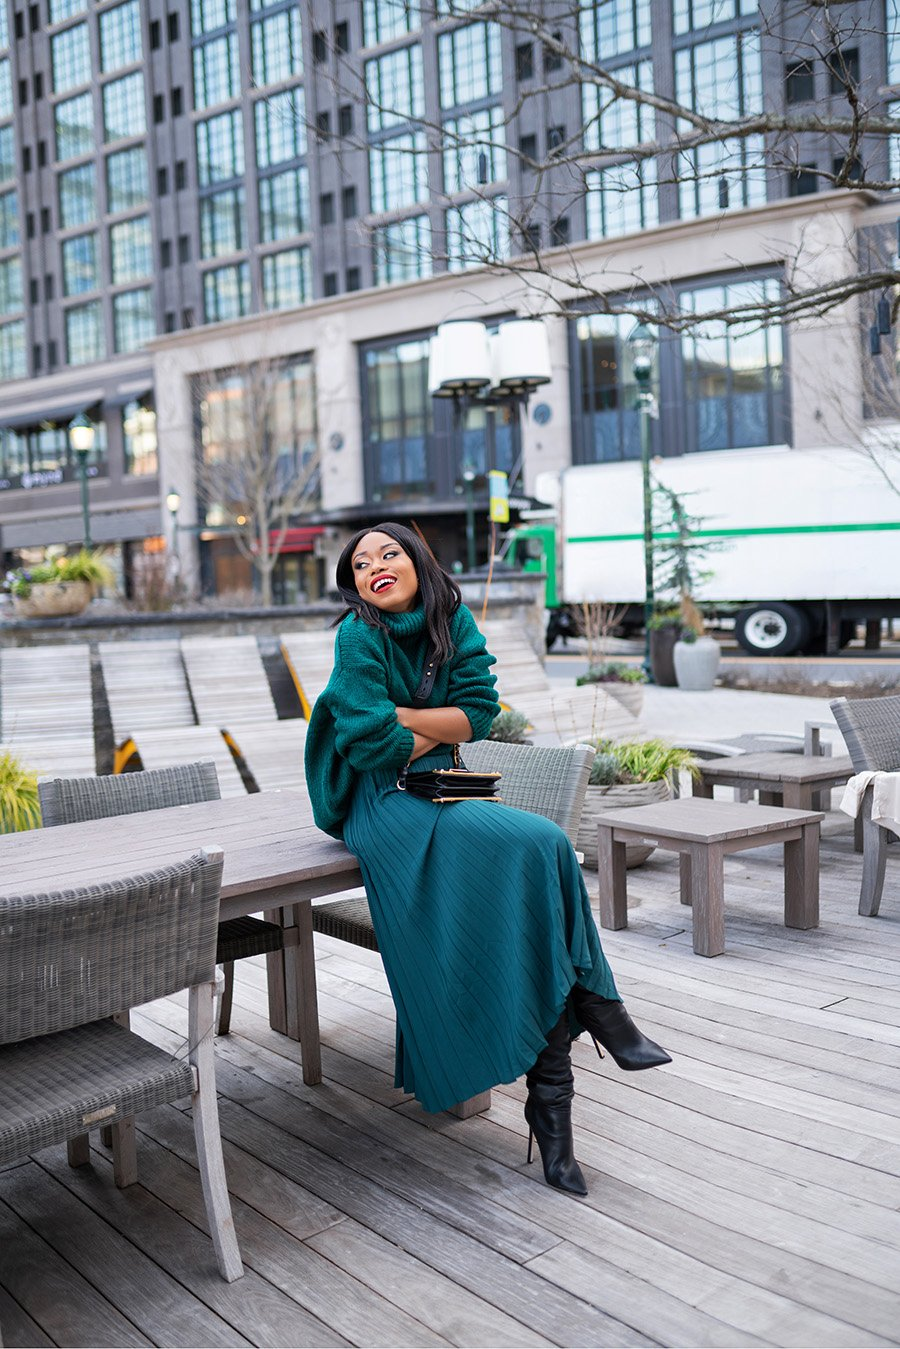 stella-adewunmi-of-jadore-fashion-blog-shares-how-to-wear-pleated-skirt-for-work-and-boots